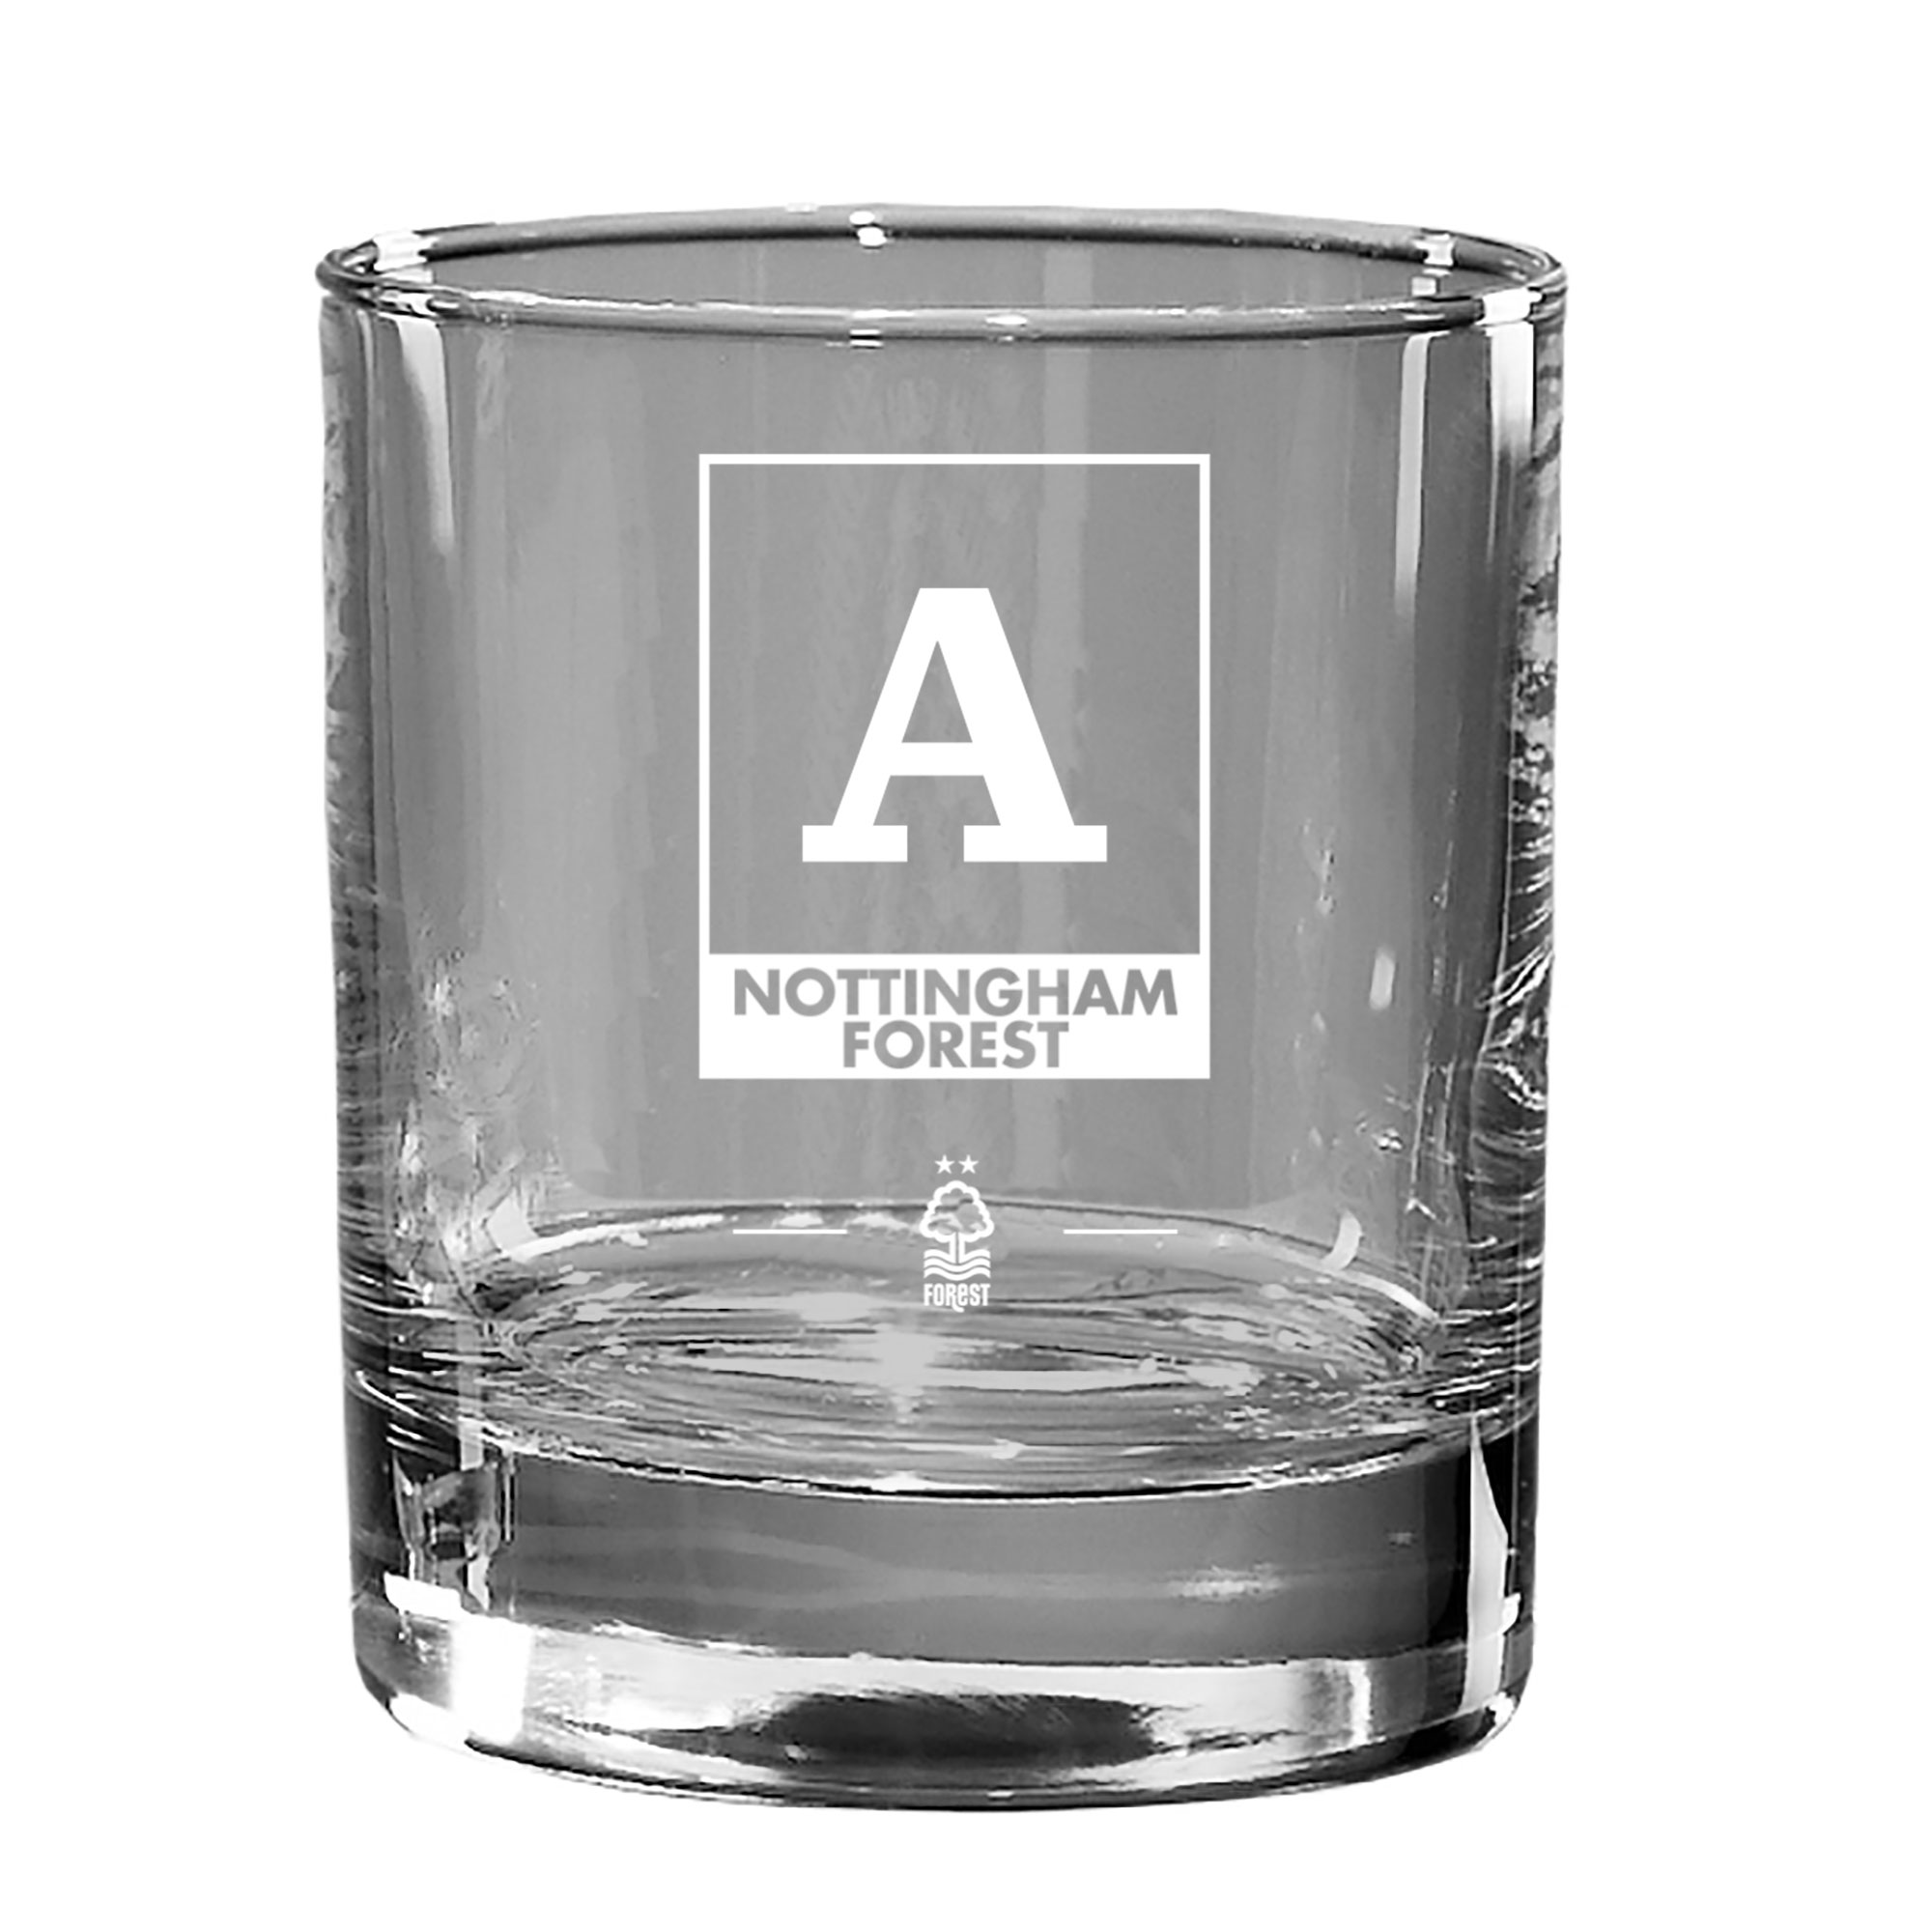 Nottingham Forest FC Monogram Old Fashioned Whisky Tumbler